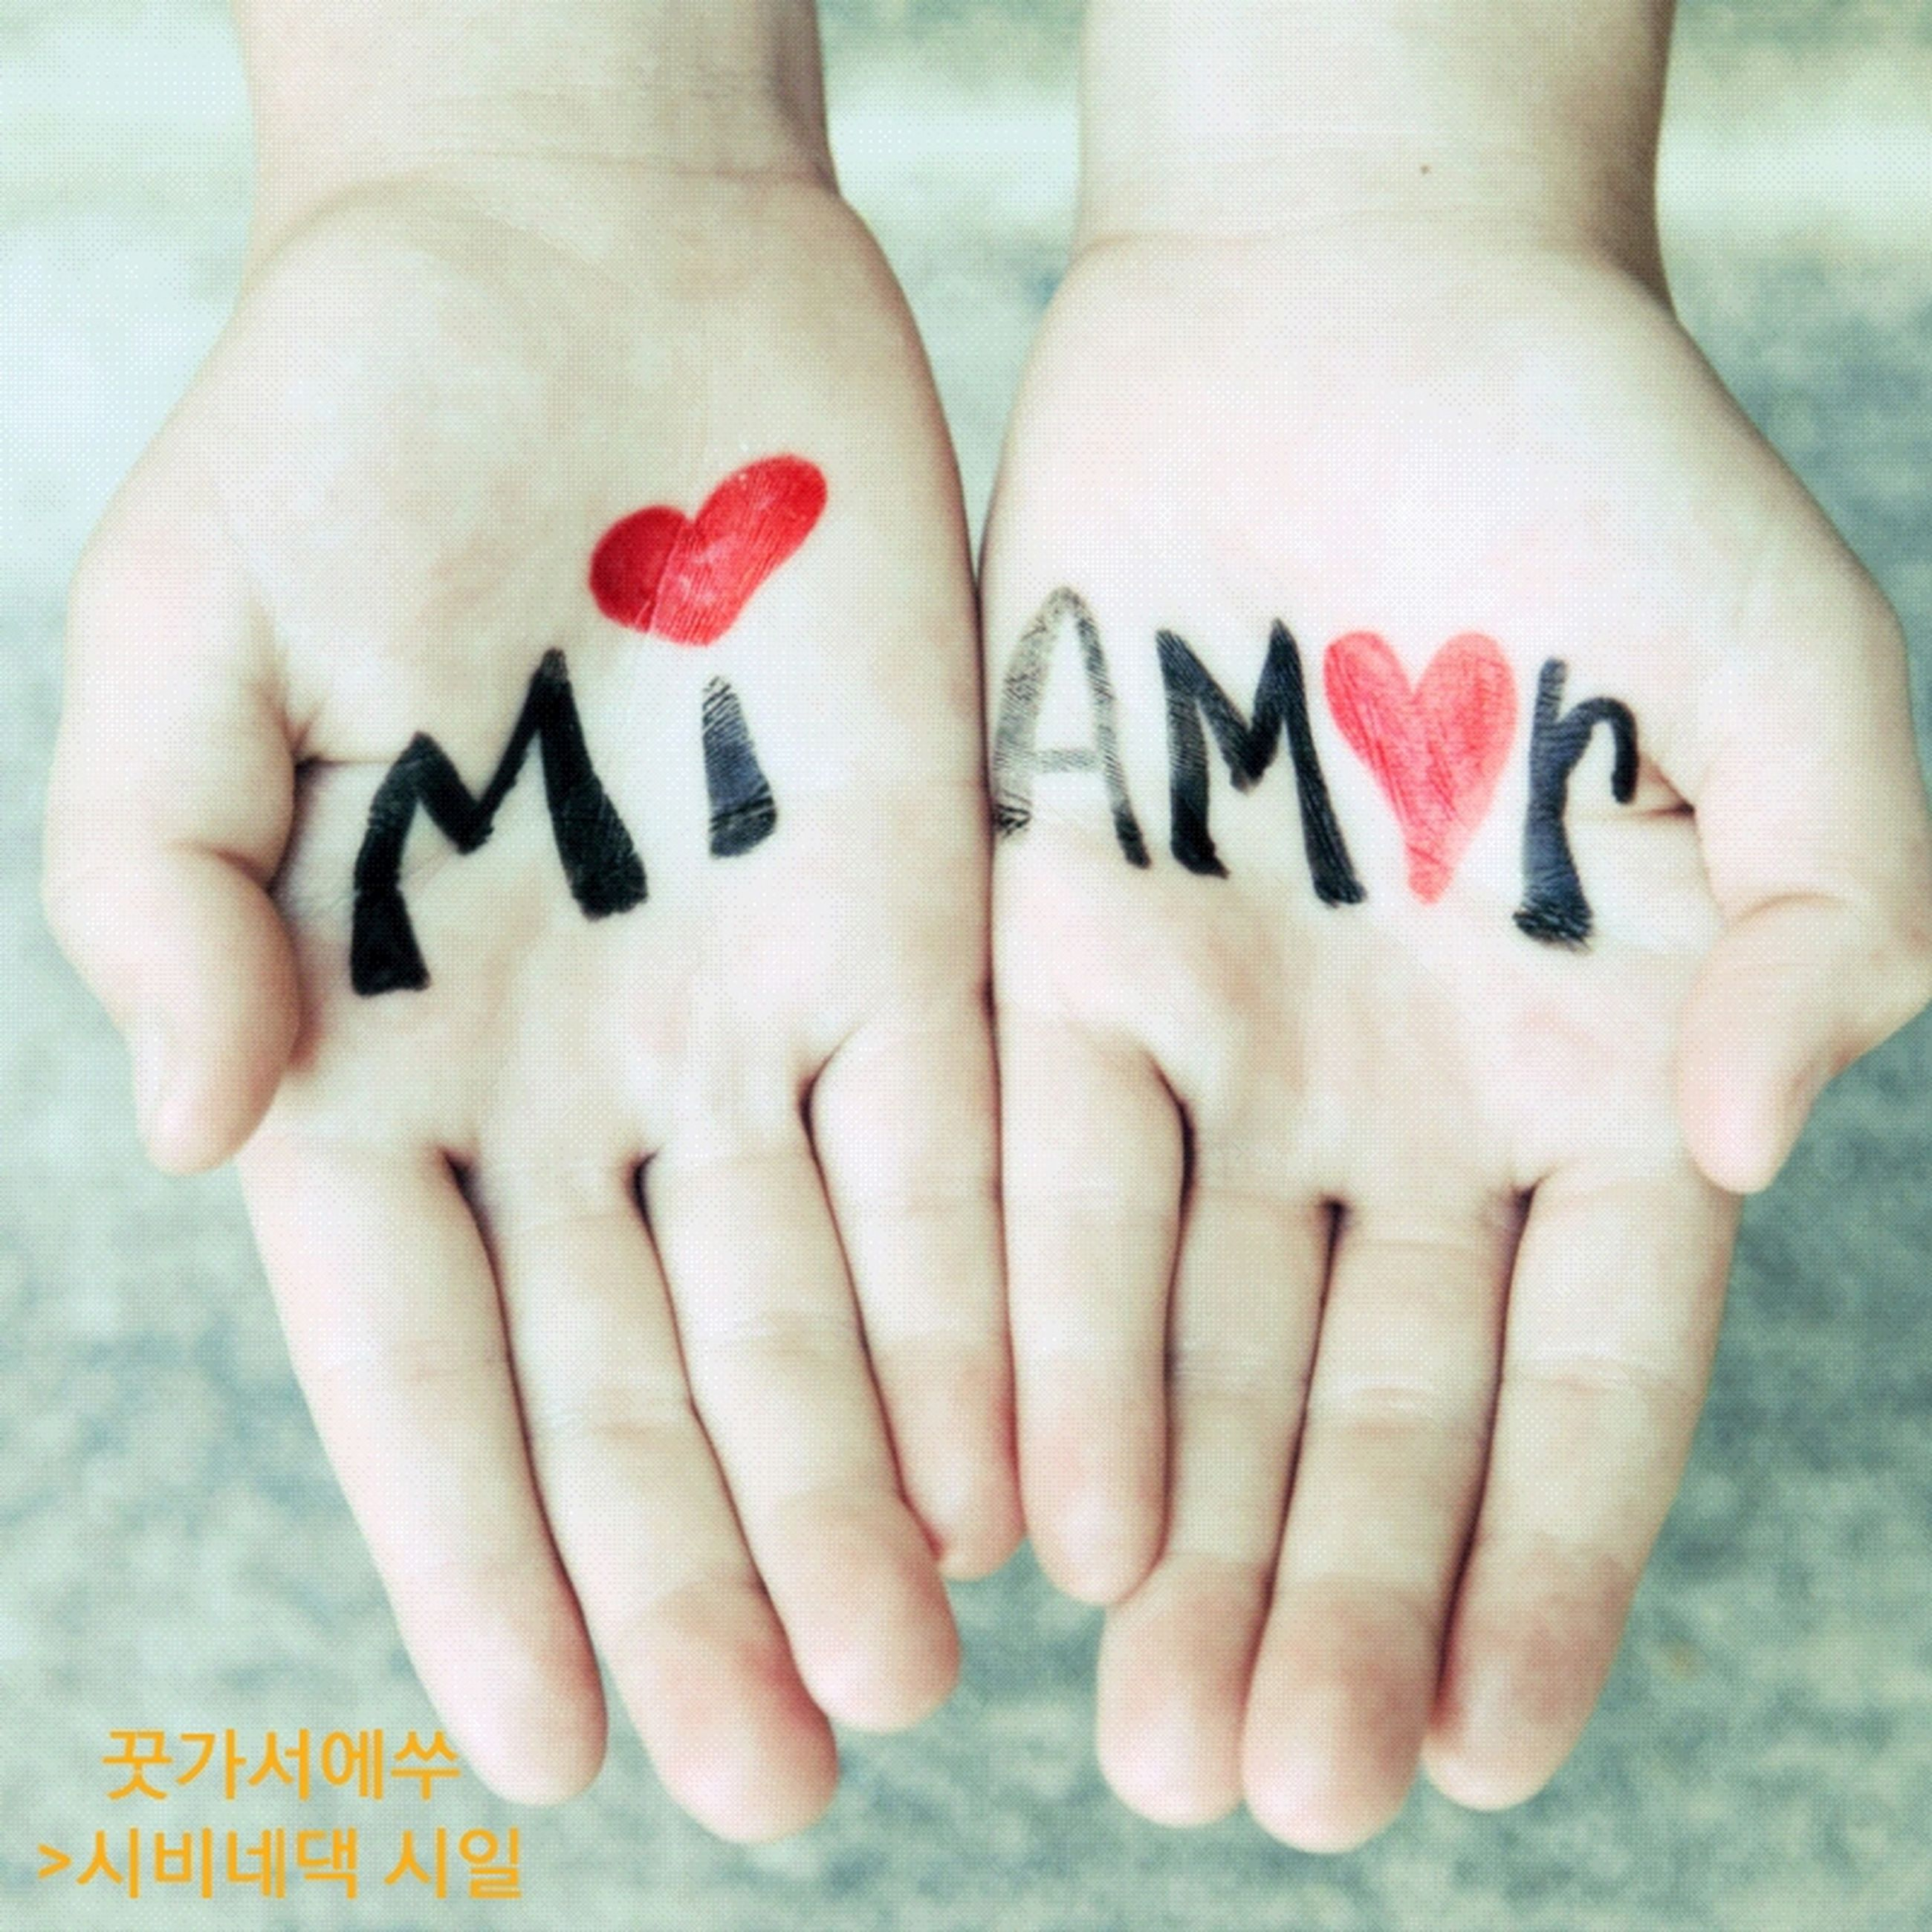 person, part of, human finger, text, love, western script, close-up, cropped, holding, lifestyles, heart shape, unrecognizable person, communication, showing, leisure activity, creativity